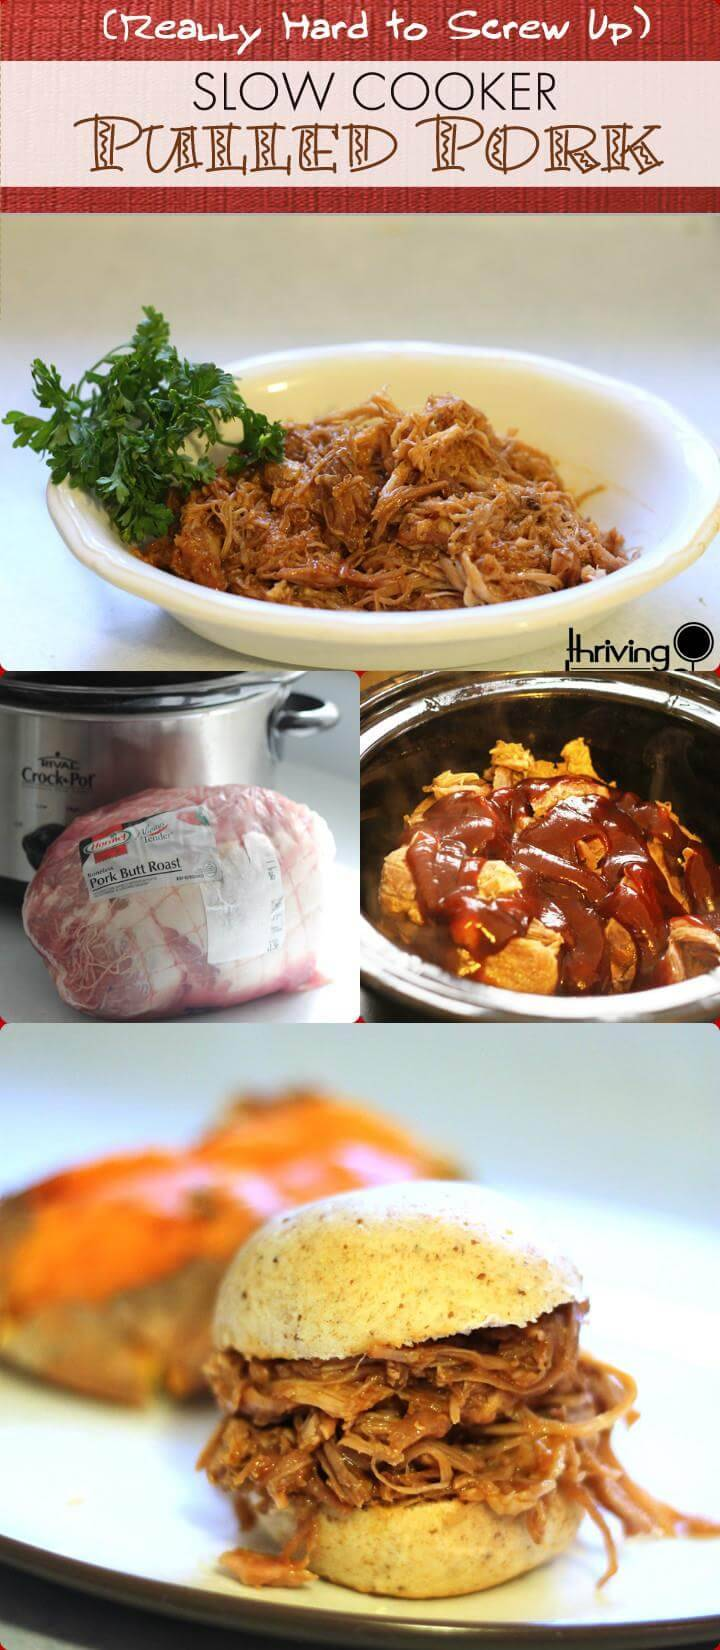 slow cooker pulled pork crowd meal recipe